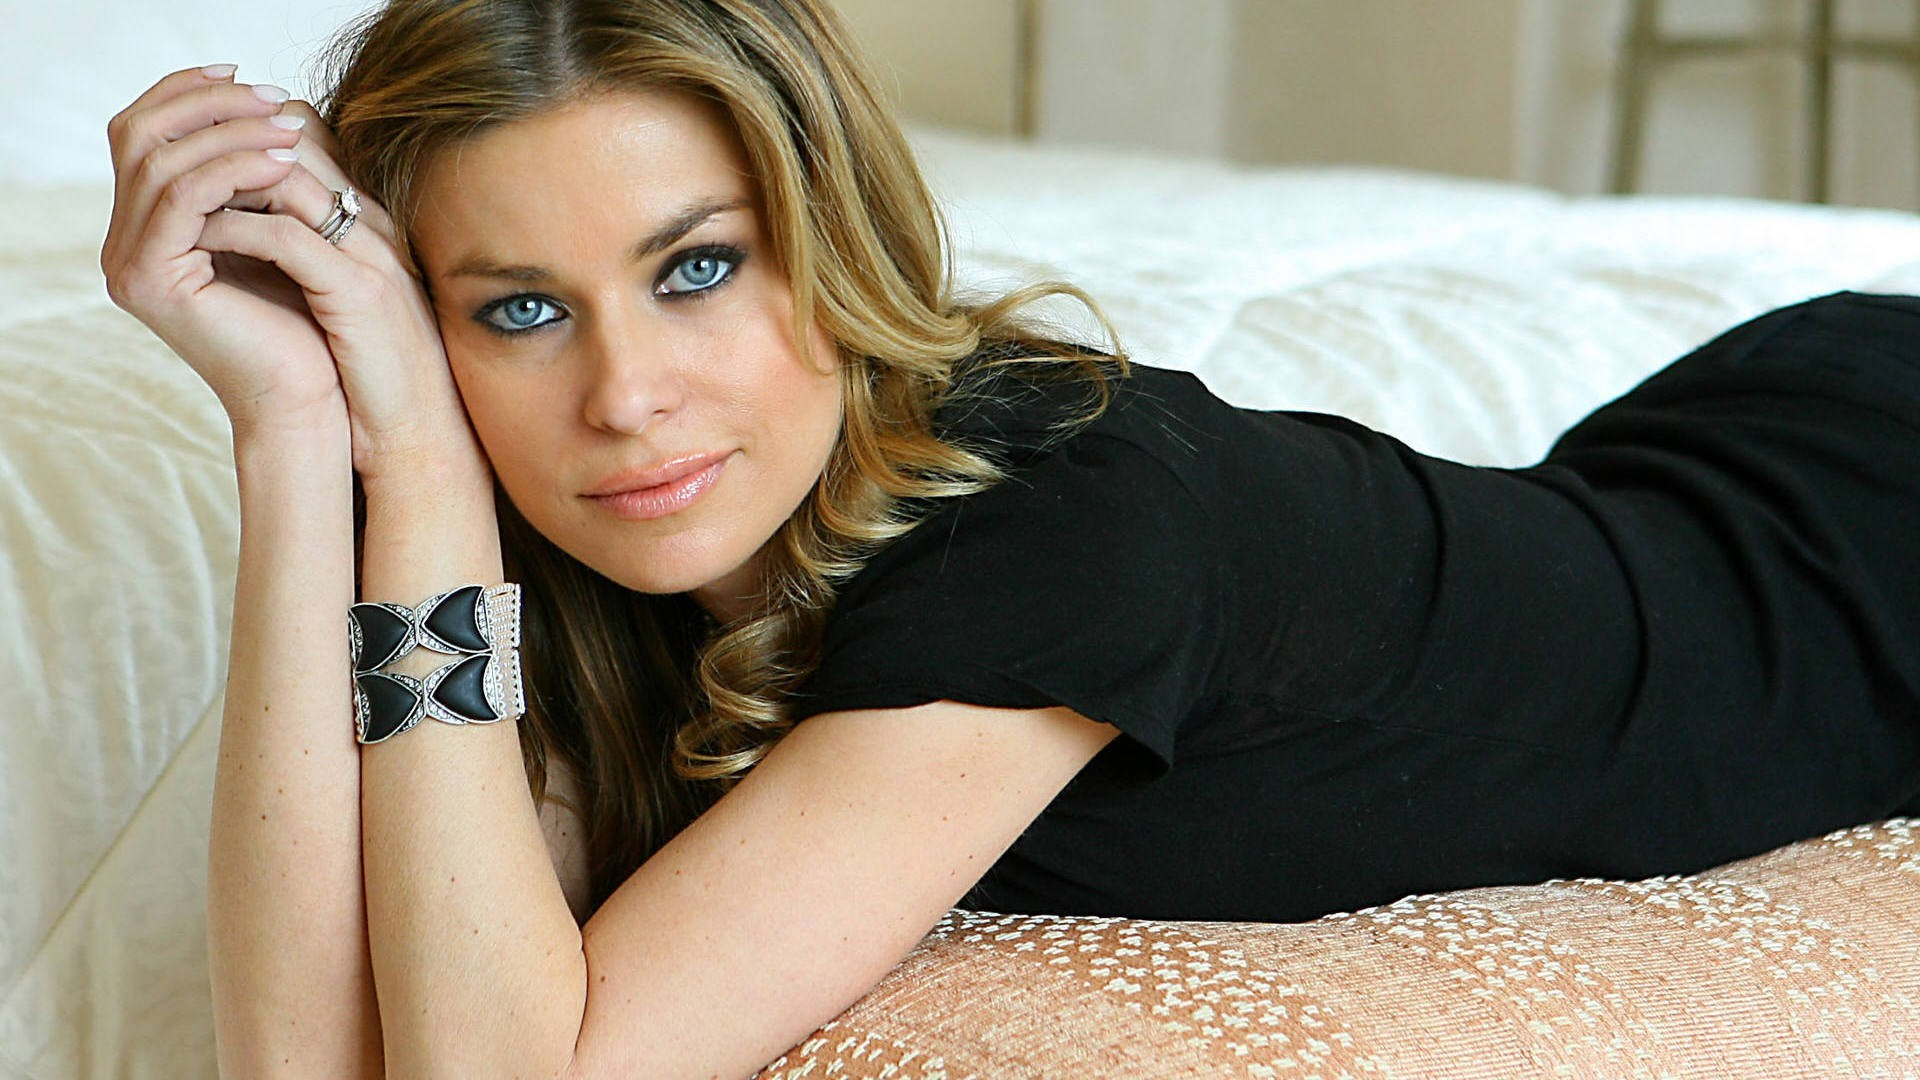 Carmen Electra Wallpaper 2